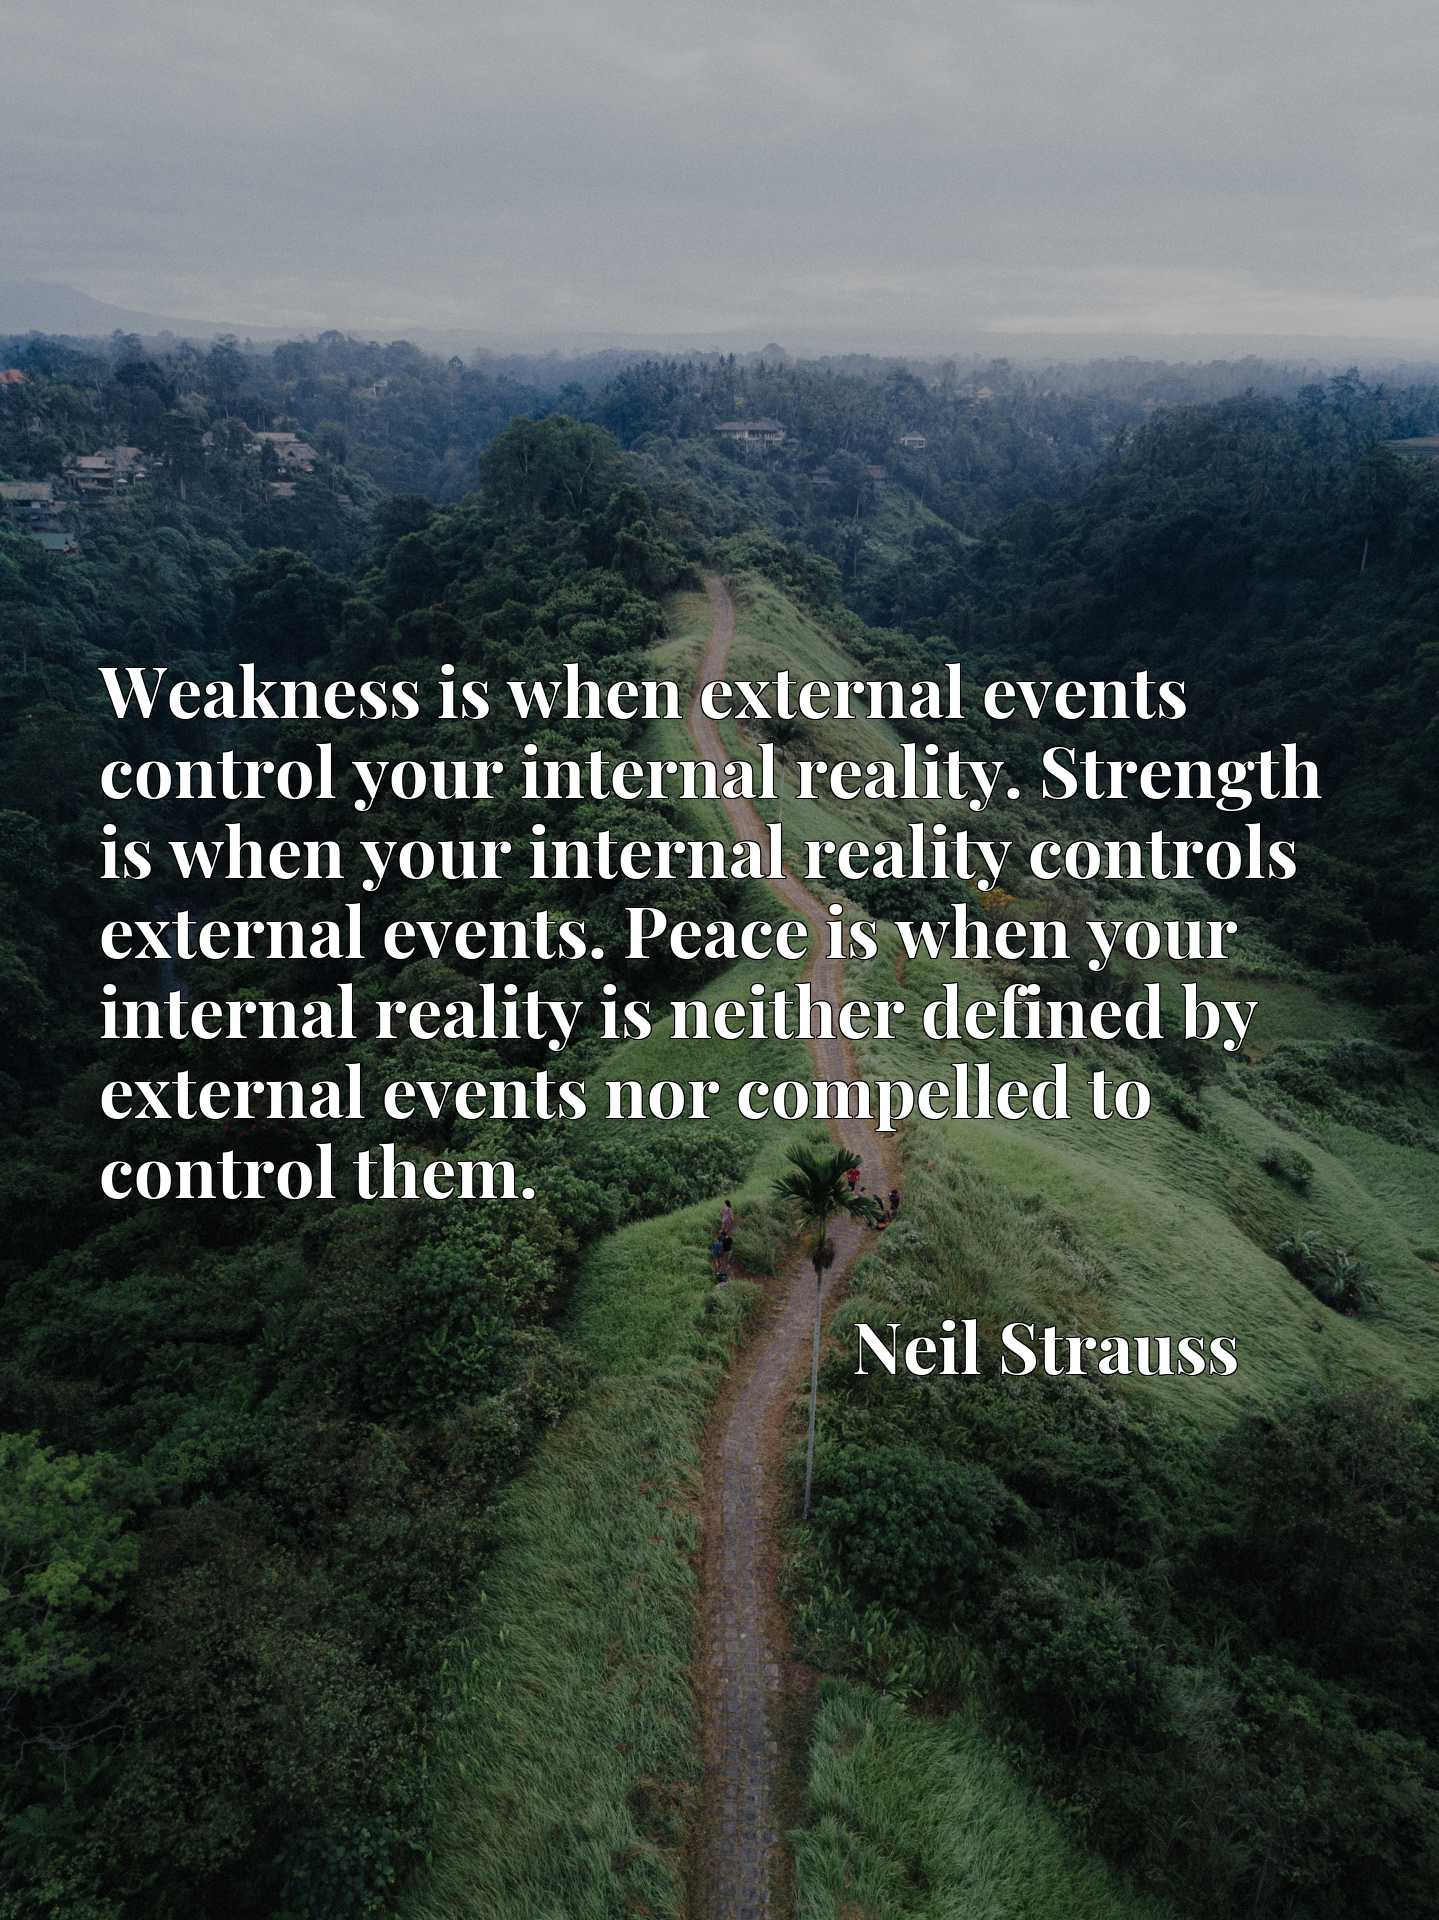 Weakness is when external events control your internal reality. Strength is when your internal reality controls external events. Peace is when your internal reality is neither defined by external events nor compelled to control them.